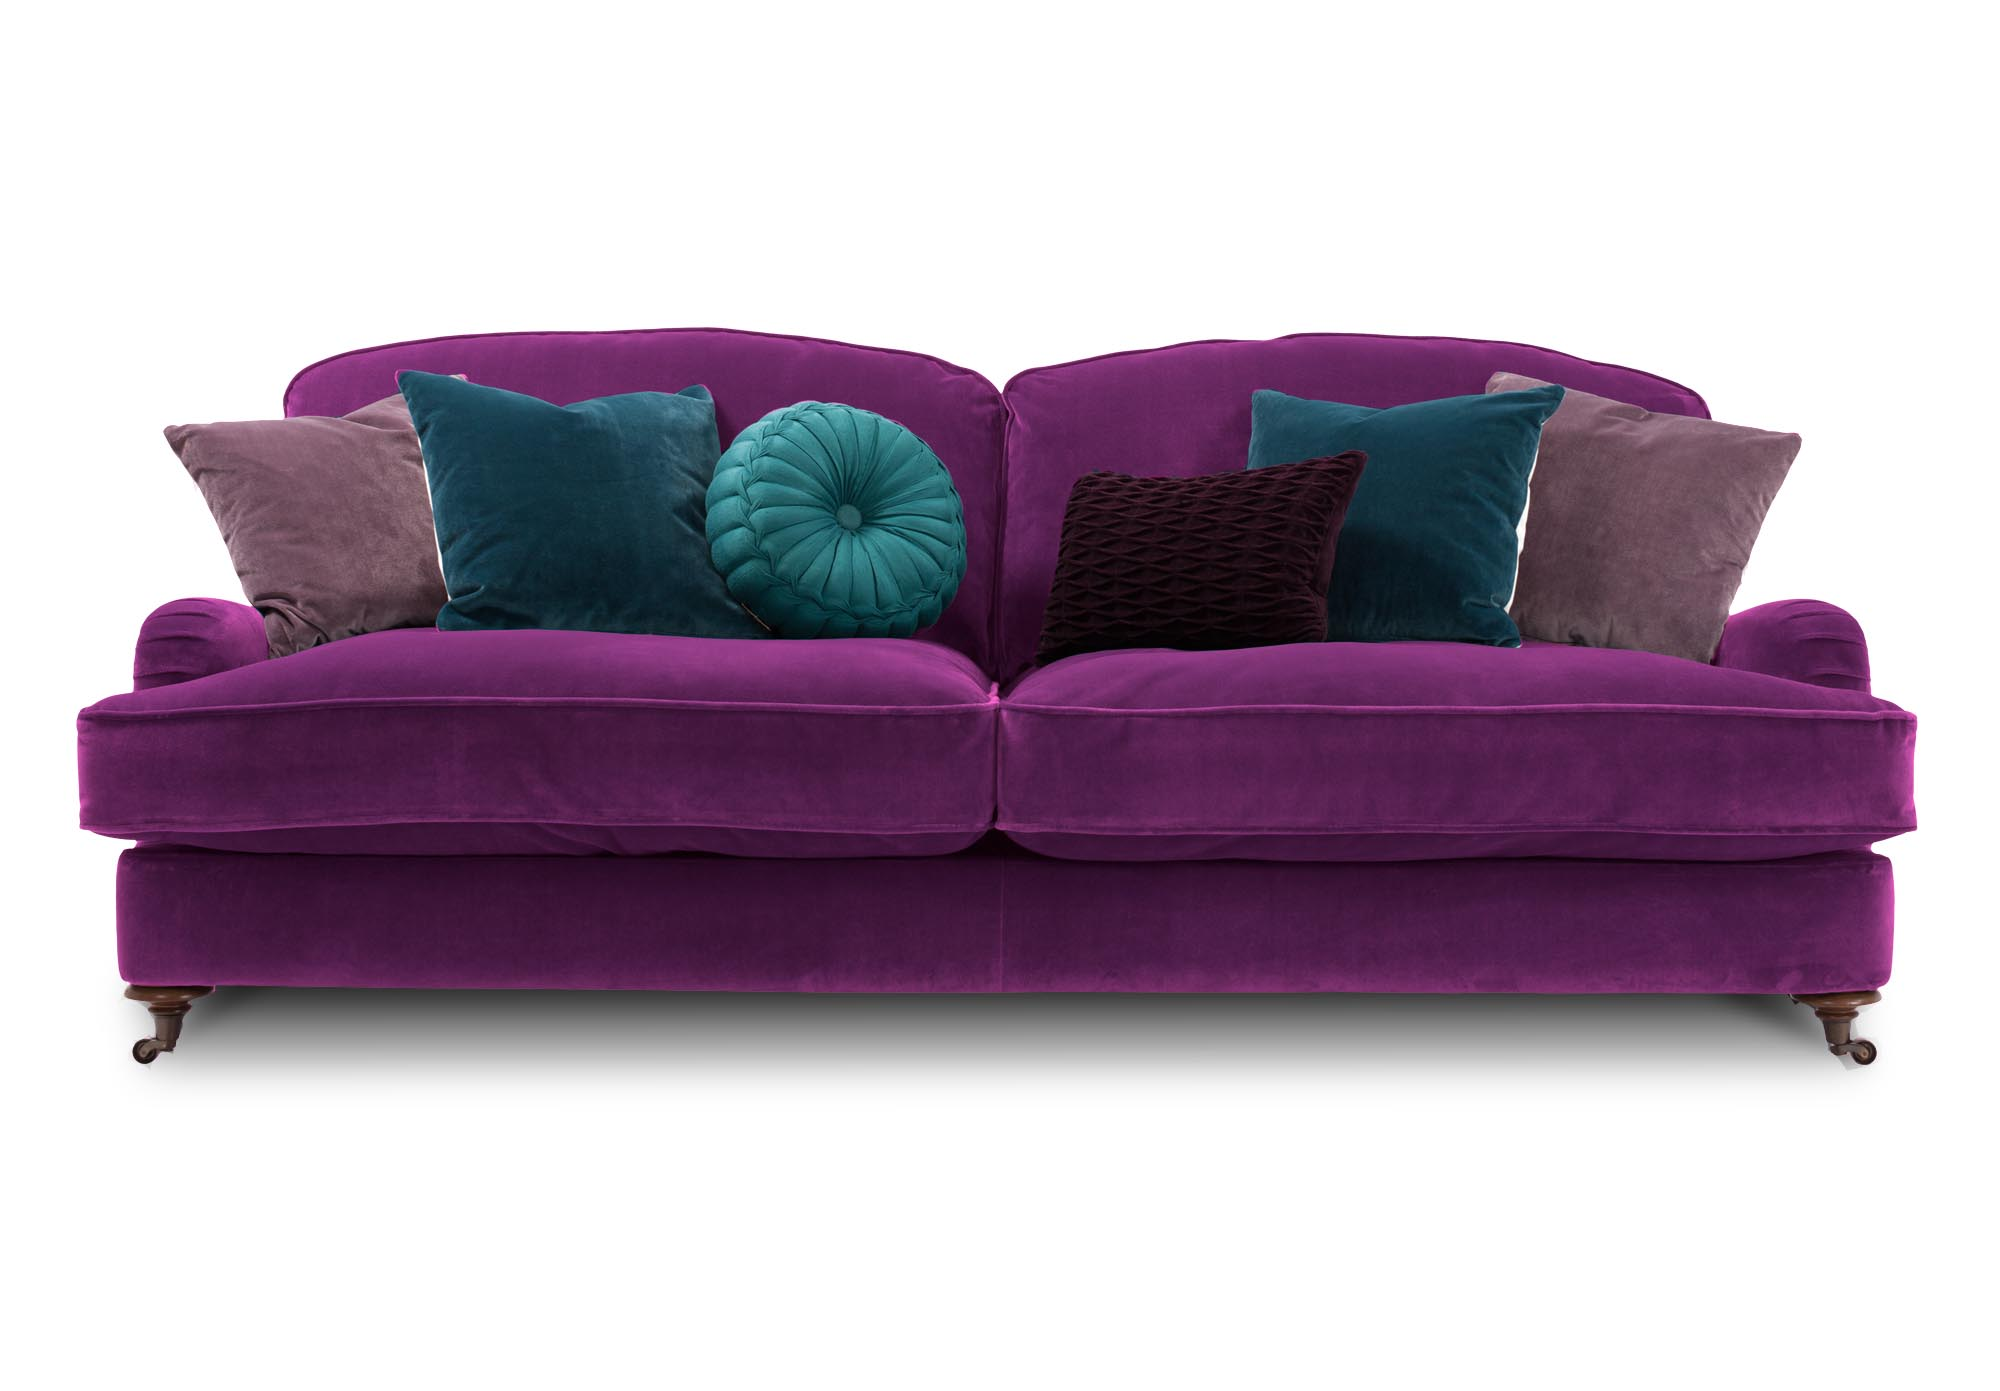 purple sofas sofa chicago 2018 tickets harlequin isabelle 3 seater from furniture village